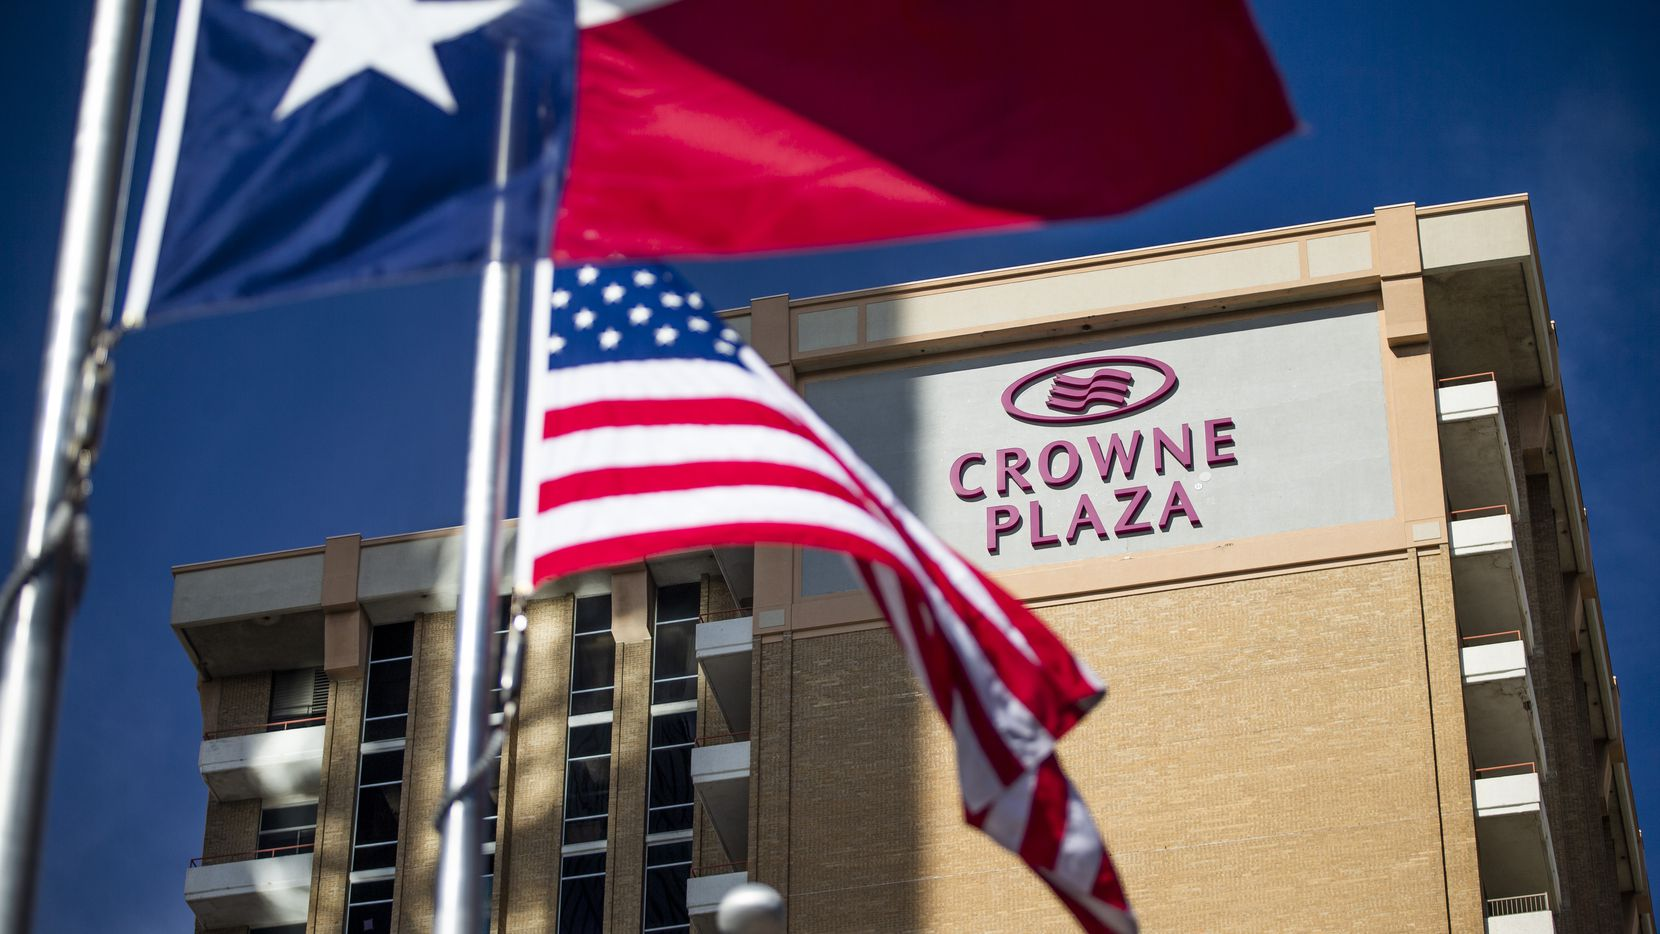 Downtown Dallas' Crown Plaza hotel, which underwent a major renovation before the pandemic, is one of dozens of North Texas hotels that lenders are keeping close watch on because of reduced income.